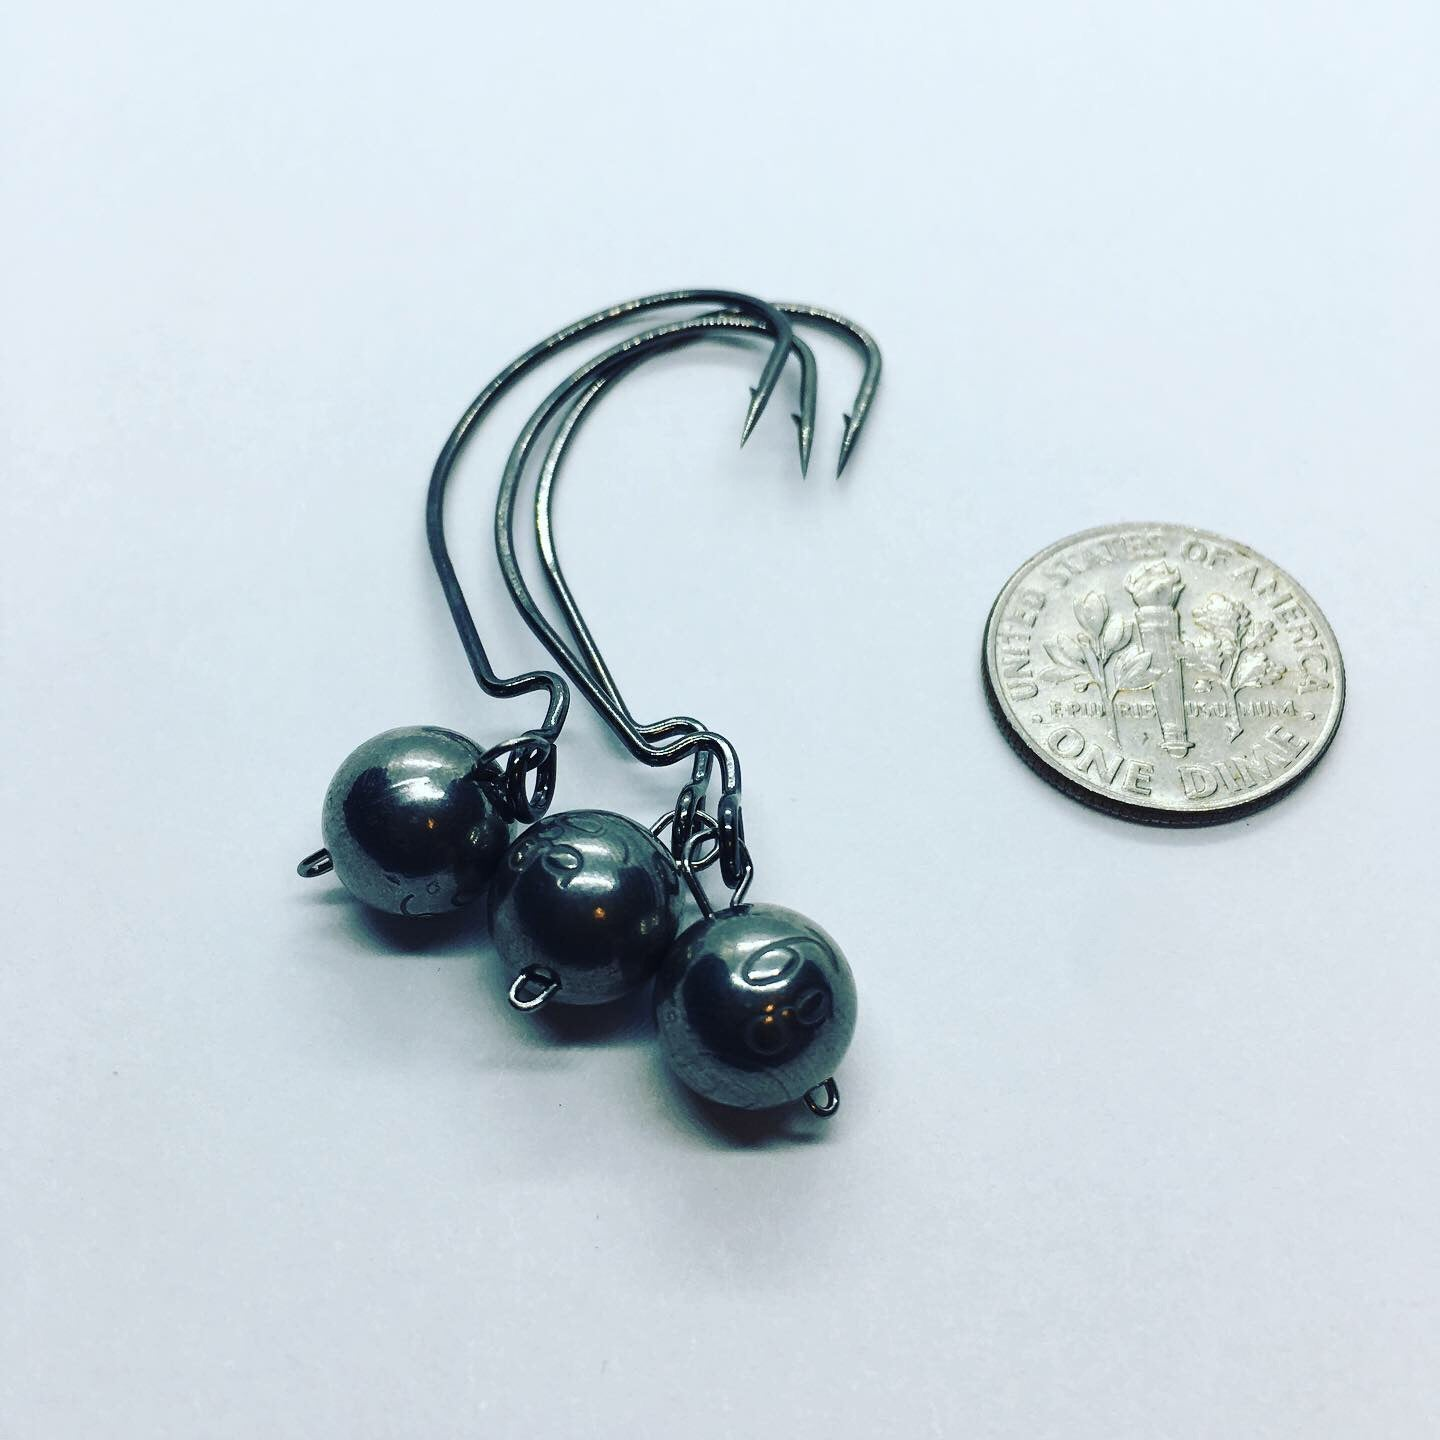 Tungsten Wobble Heads - 6 Gram/Gurza Worm 310 LE size 1/O